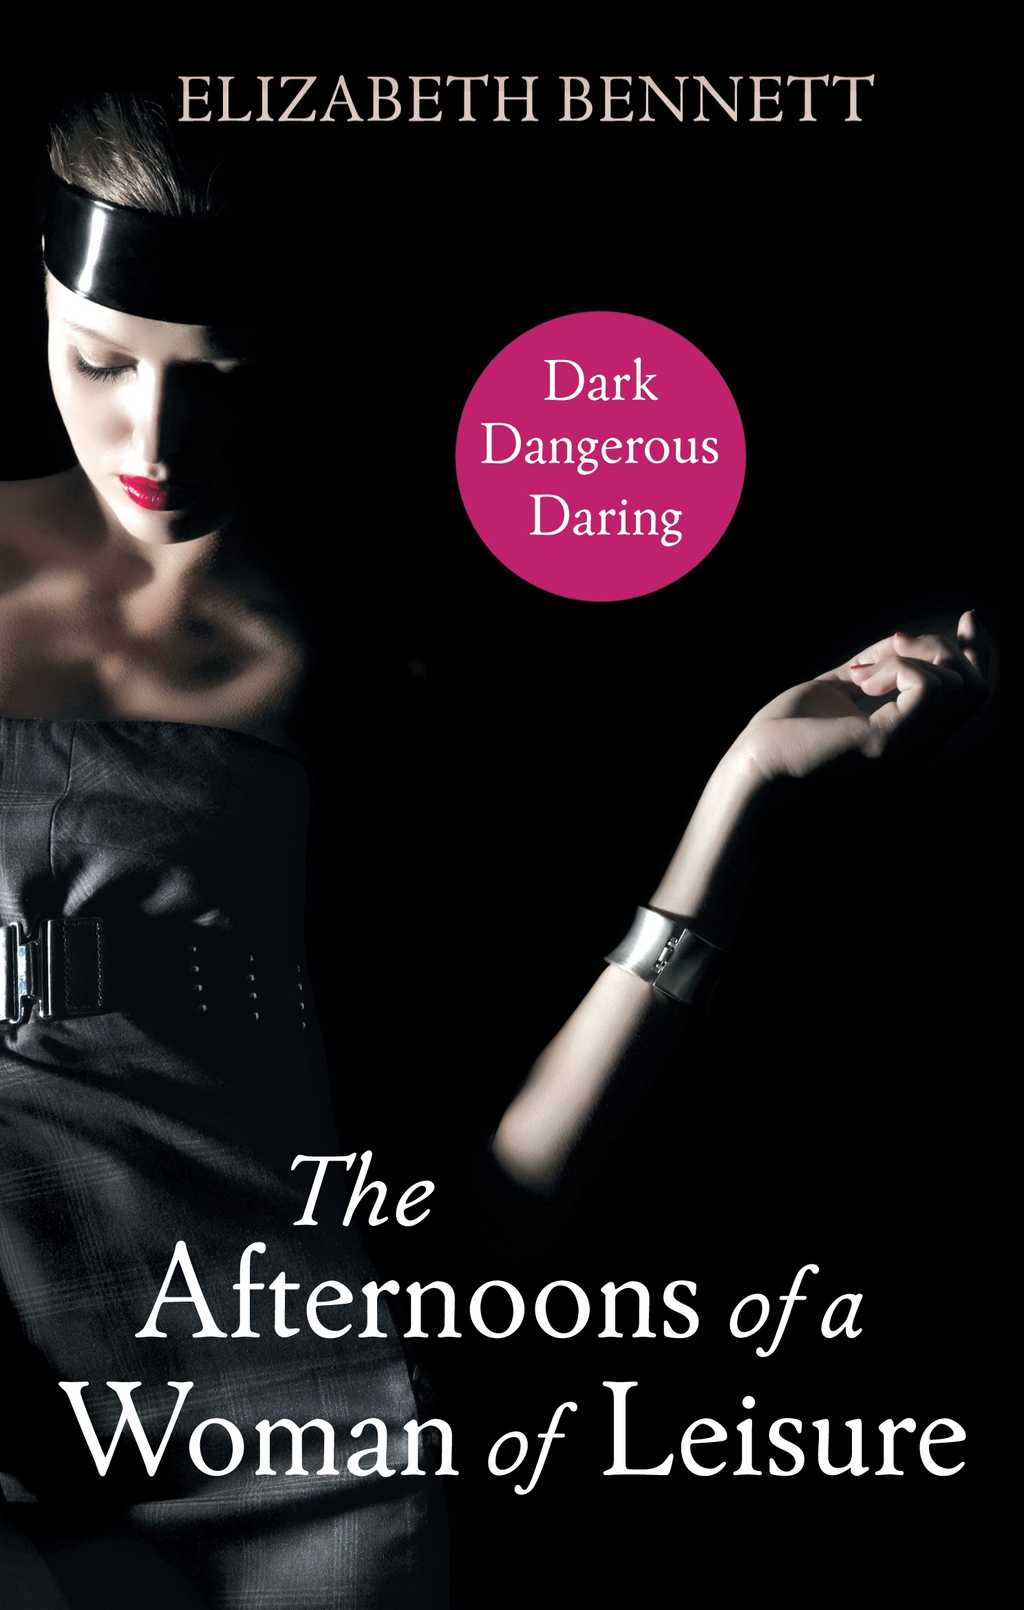 The Afternoons Of A Woman Of Leisure Discovery of a Woman's Desire